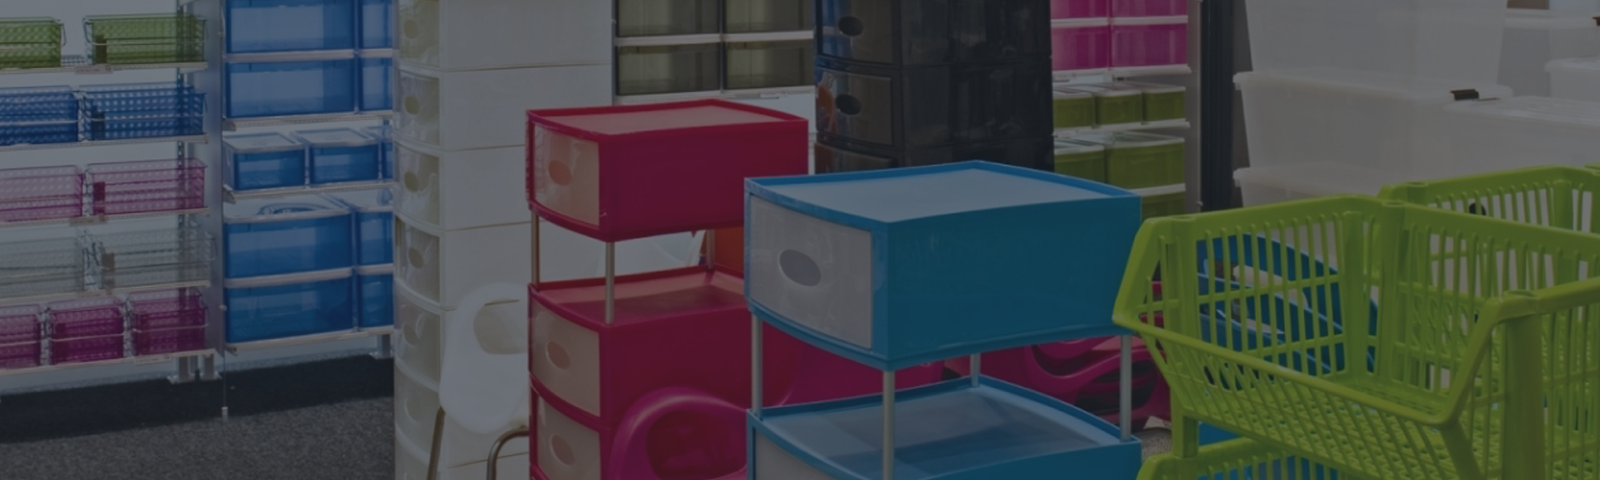 the-container-store-standard-1600x480